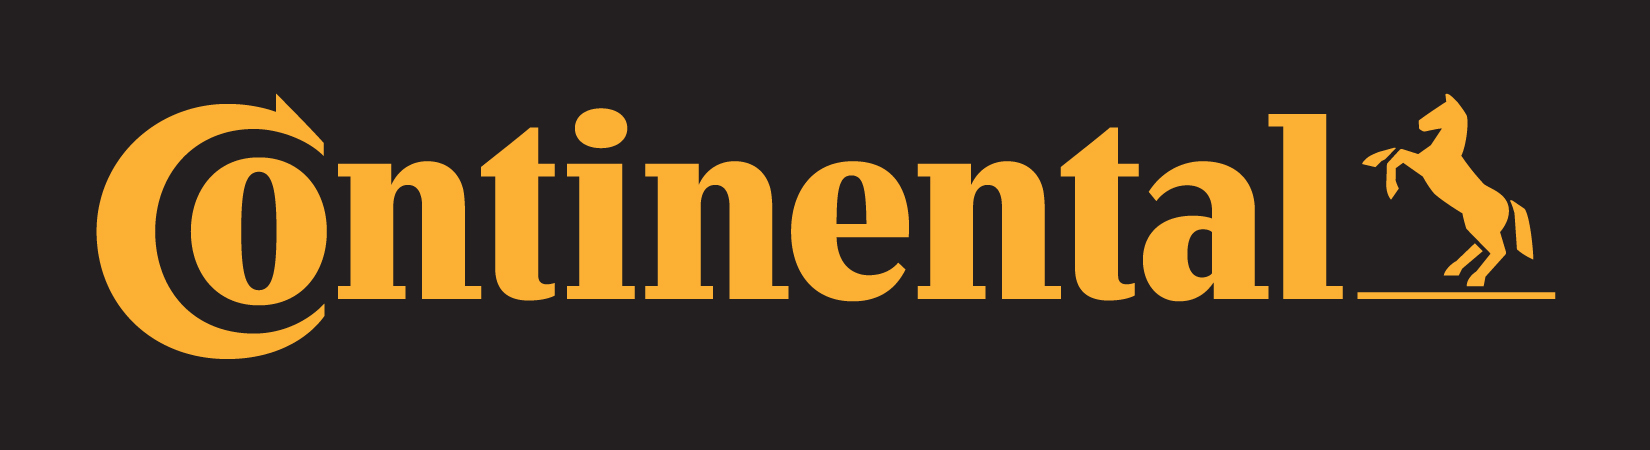 logo-conti-gold-on-black.jpg